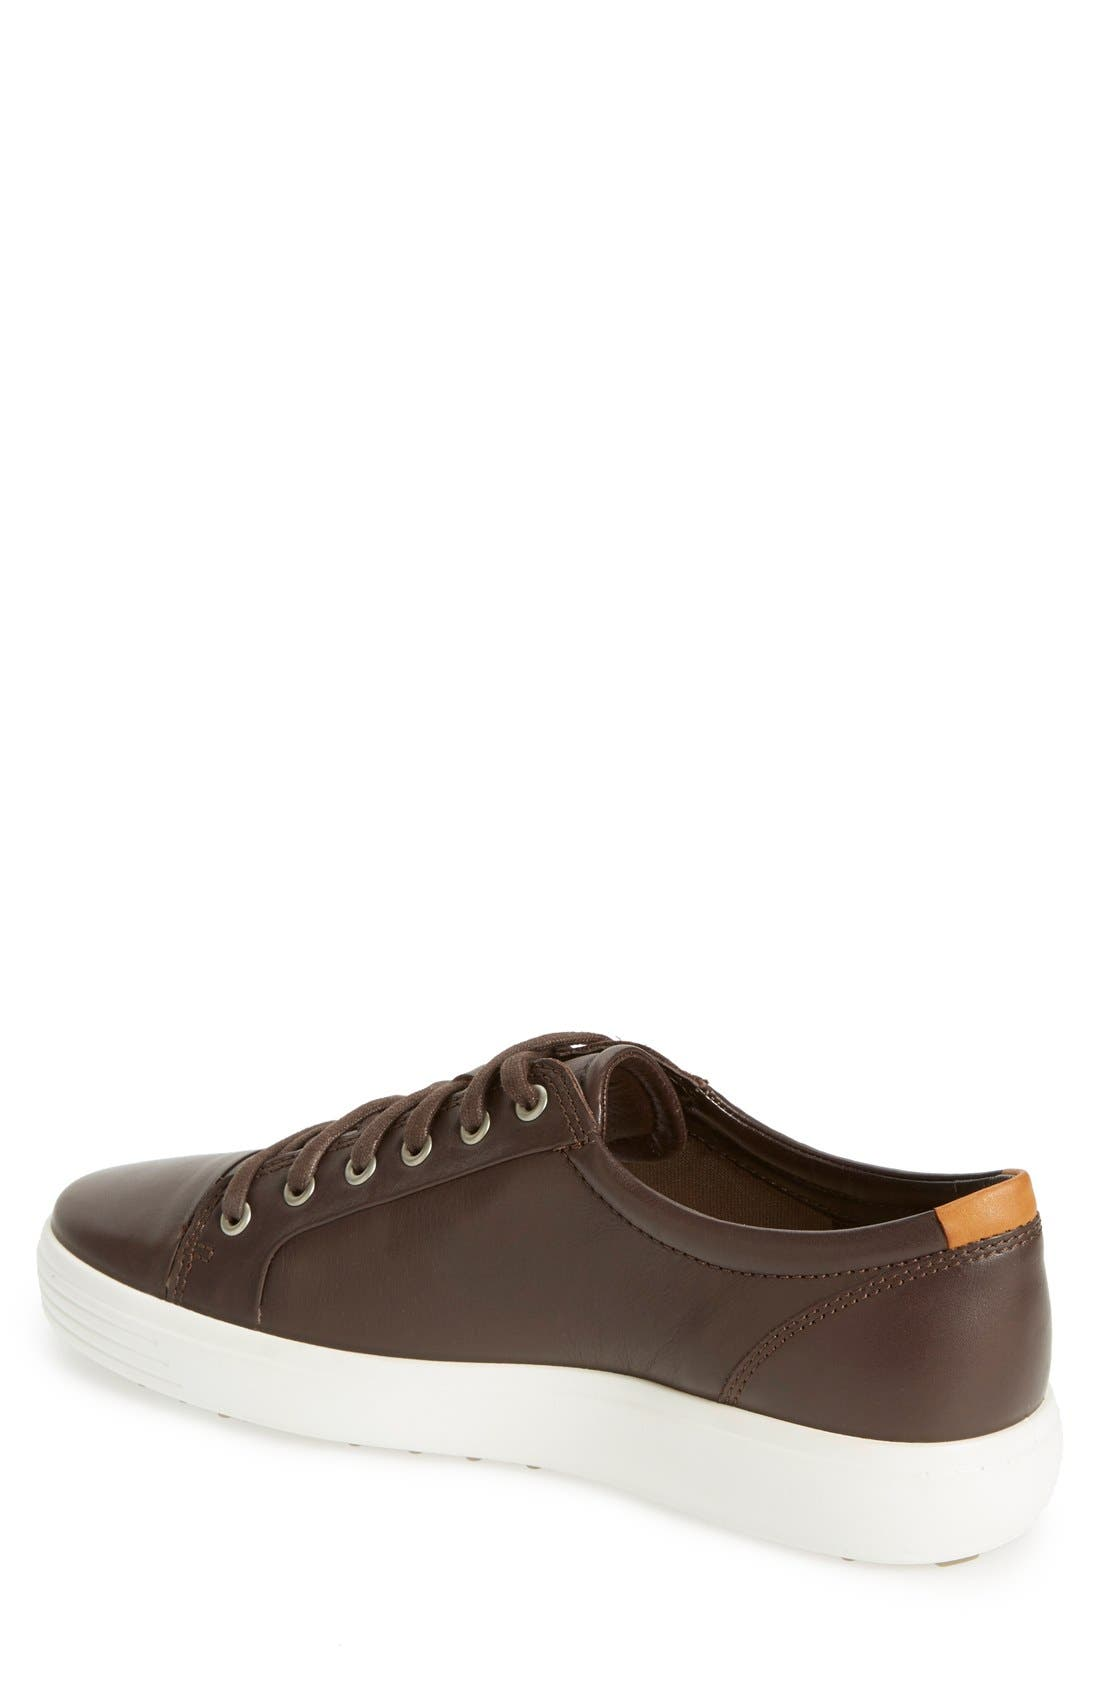 Soft VII Lace-Up Sneaker,                             Alternate thumbnail 34, color,